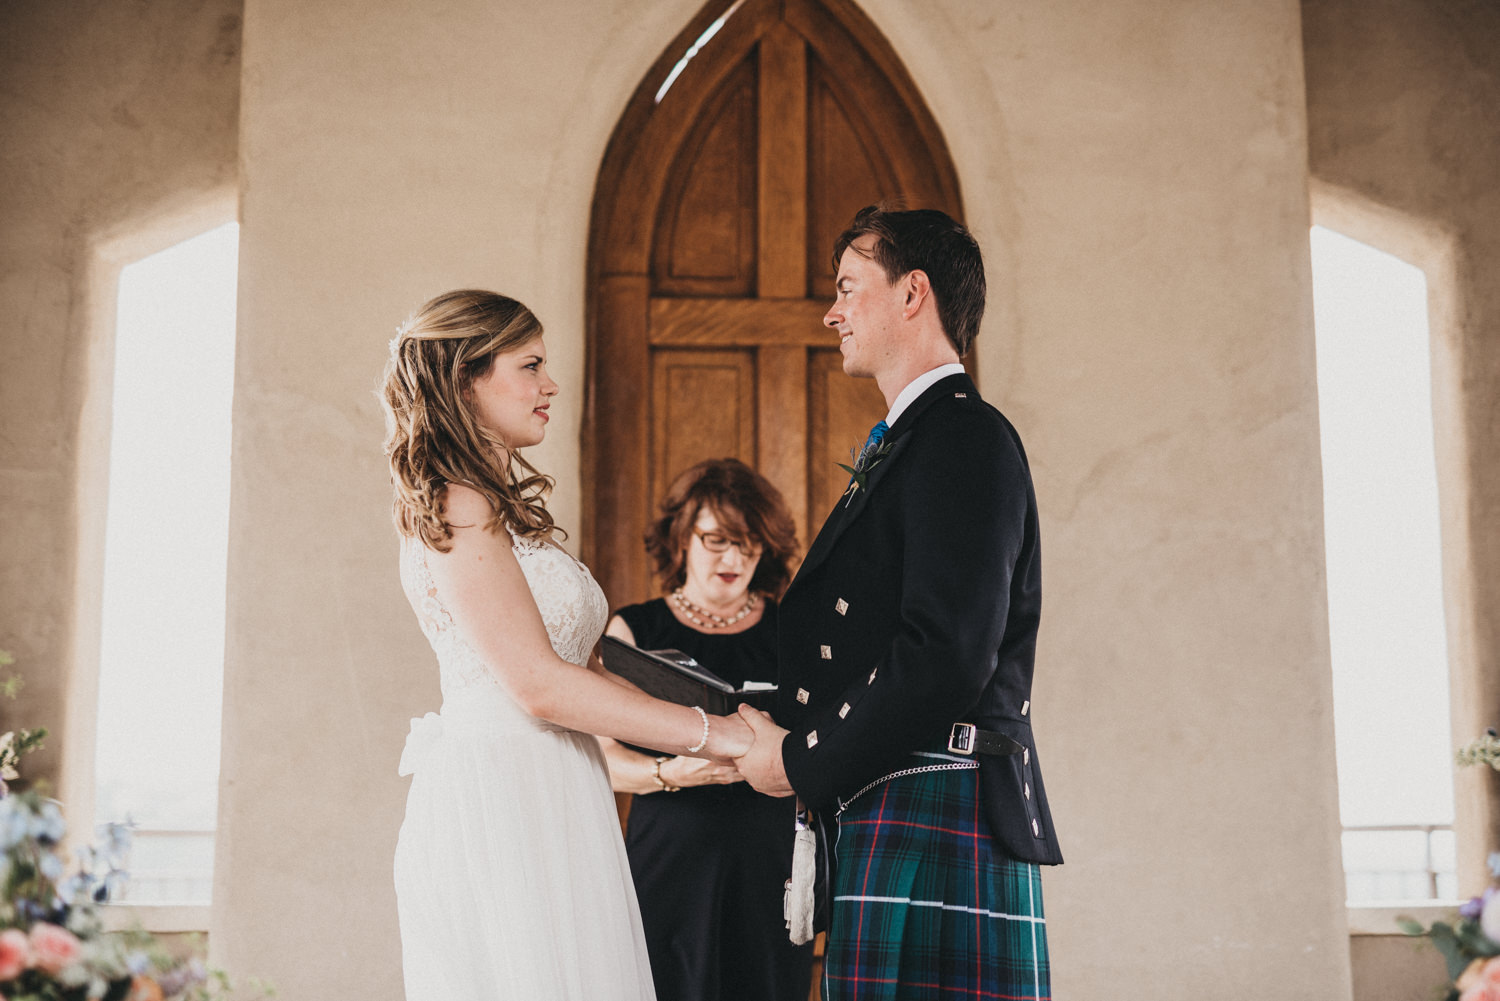 A Scottish Wedding at Chapel Dulcinea